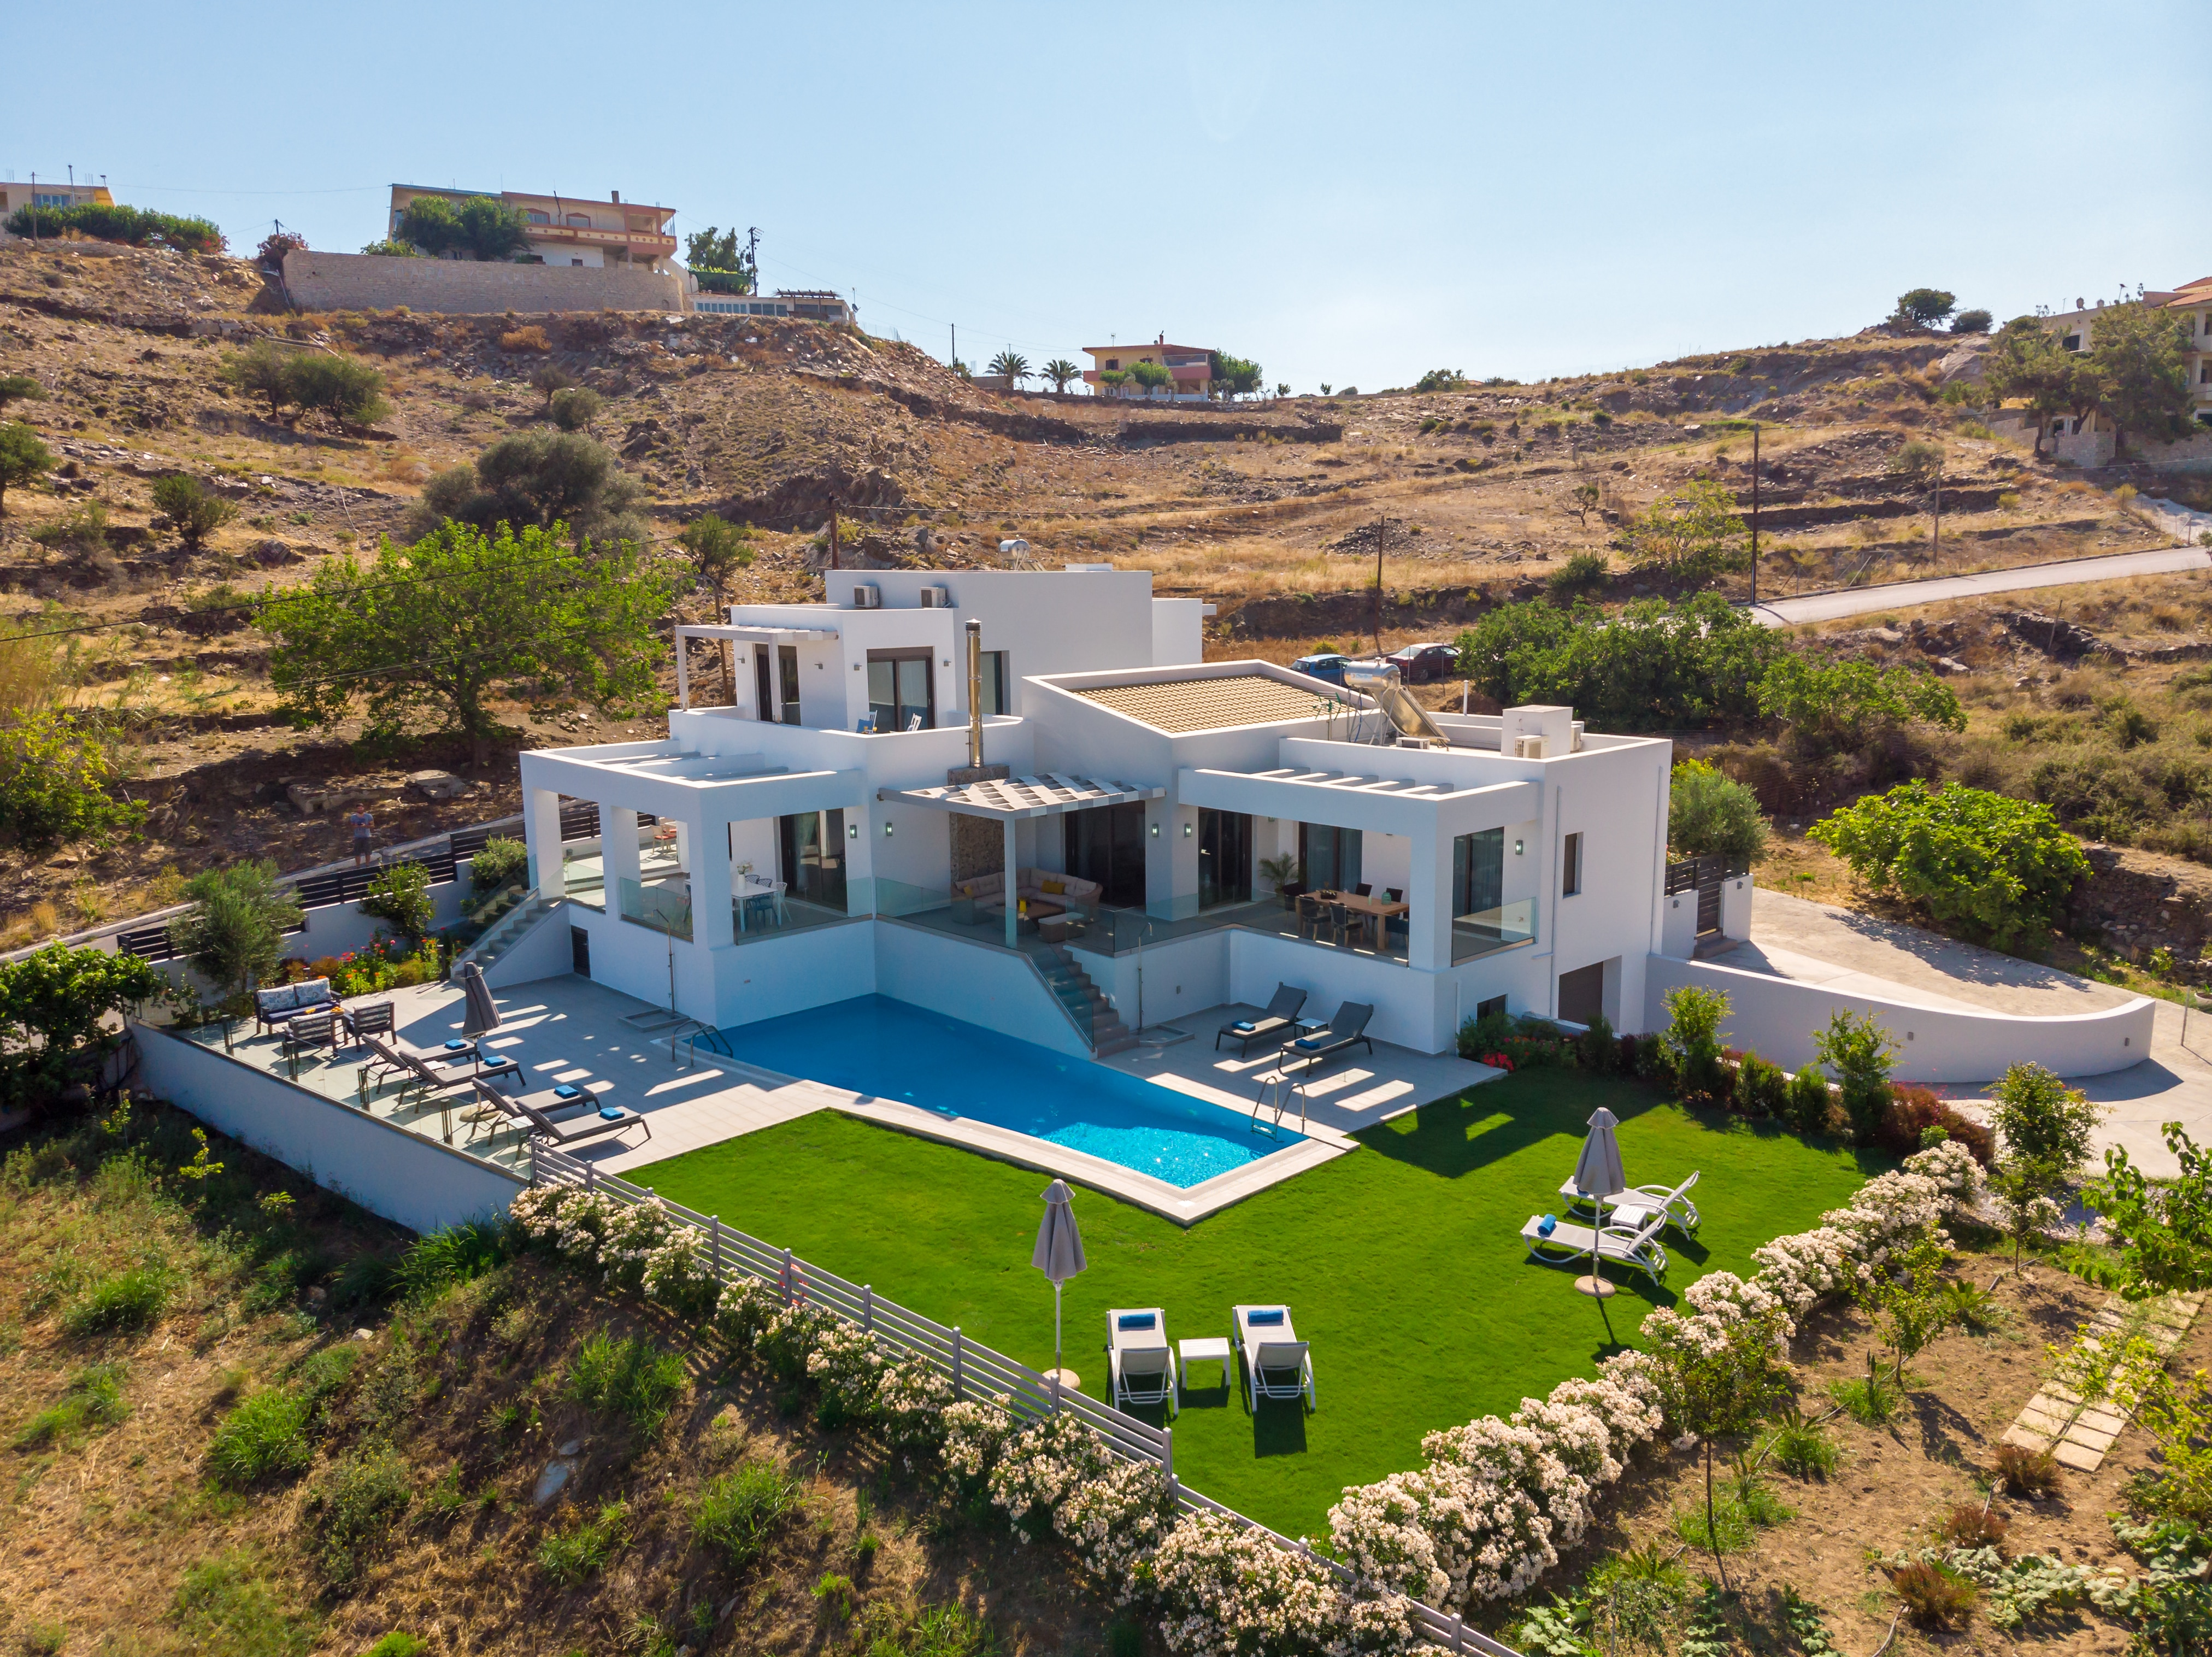 Luxury Modern Villa with Stunning Design & Close to the Sea